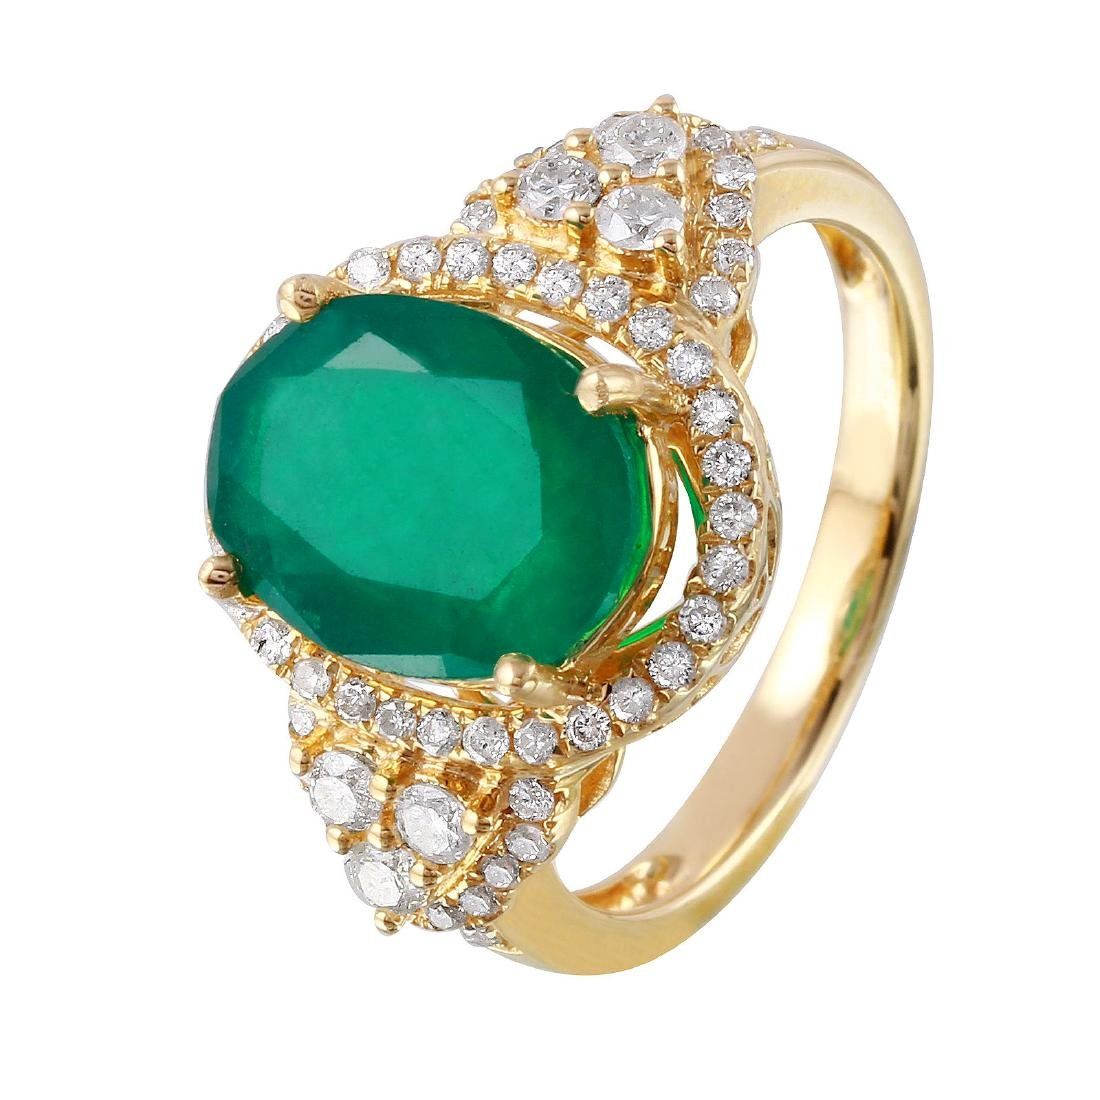 14KT Yellow Gold Emerald and Diamond Ring - 5